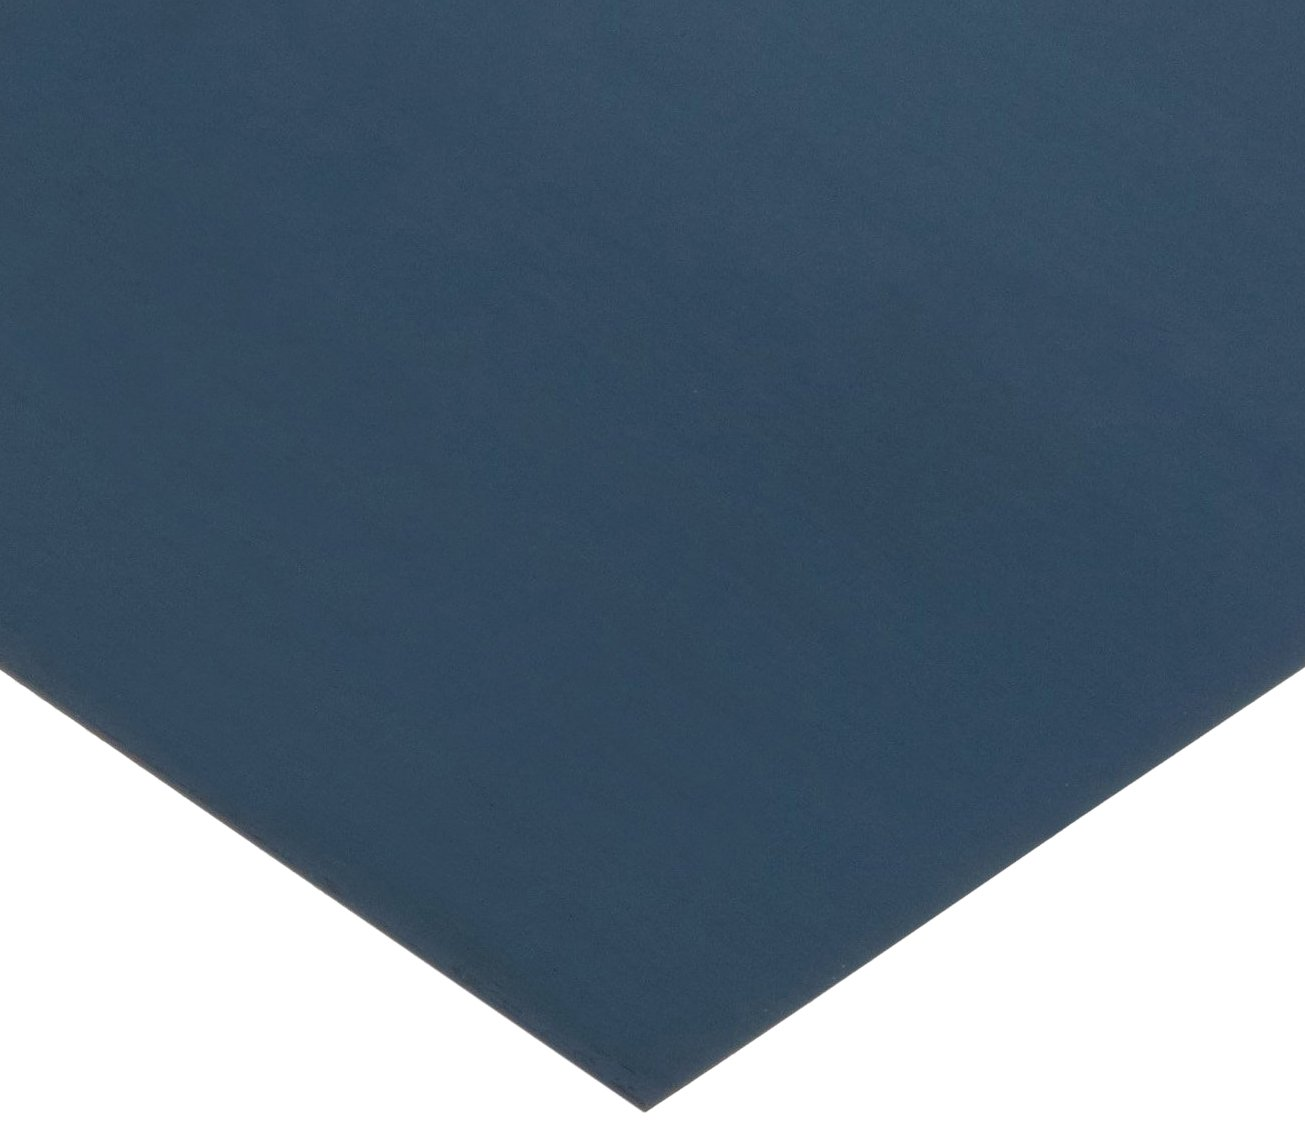 60 Length 0.004 Thick 5 Width 60 Length Small Parts 0.004 Thick Blue Temper 5 Width 1095 Steel Shim Stock ASTM A29//MIL-S-7947